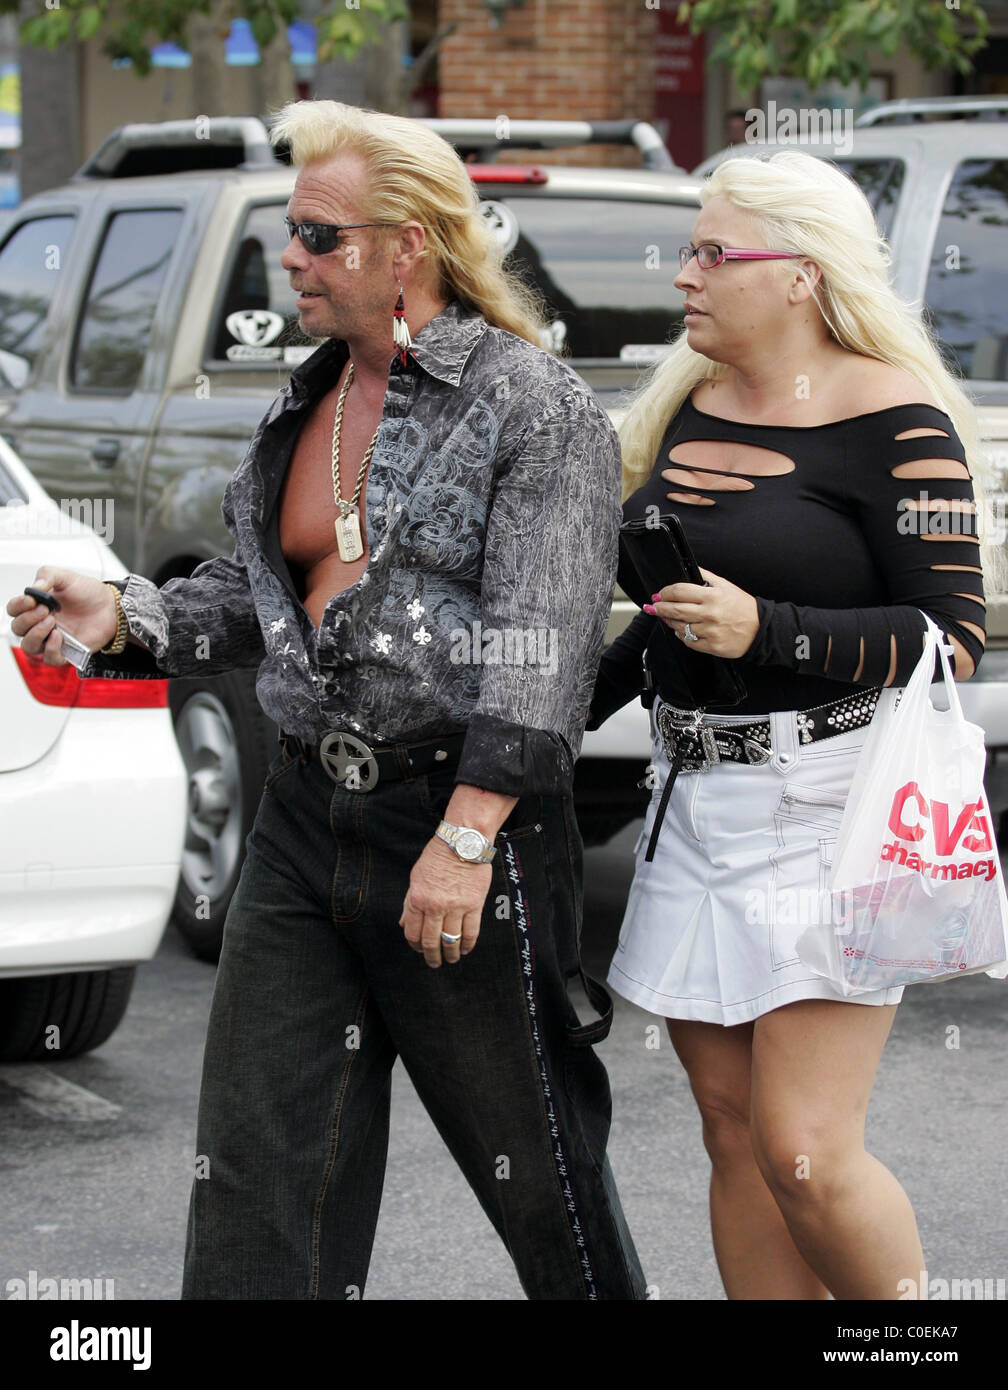 The gallery for dog the bounty hunter family 2013 for Duane chapman dog the bounty hunter